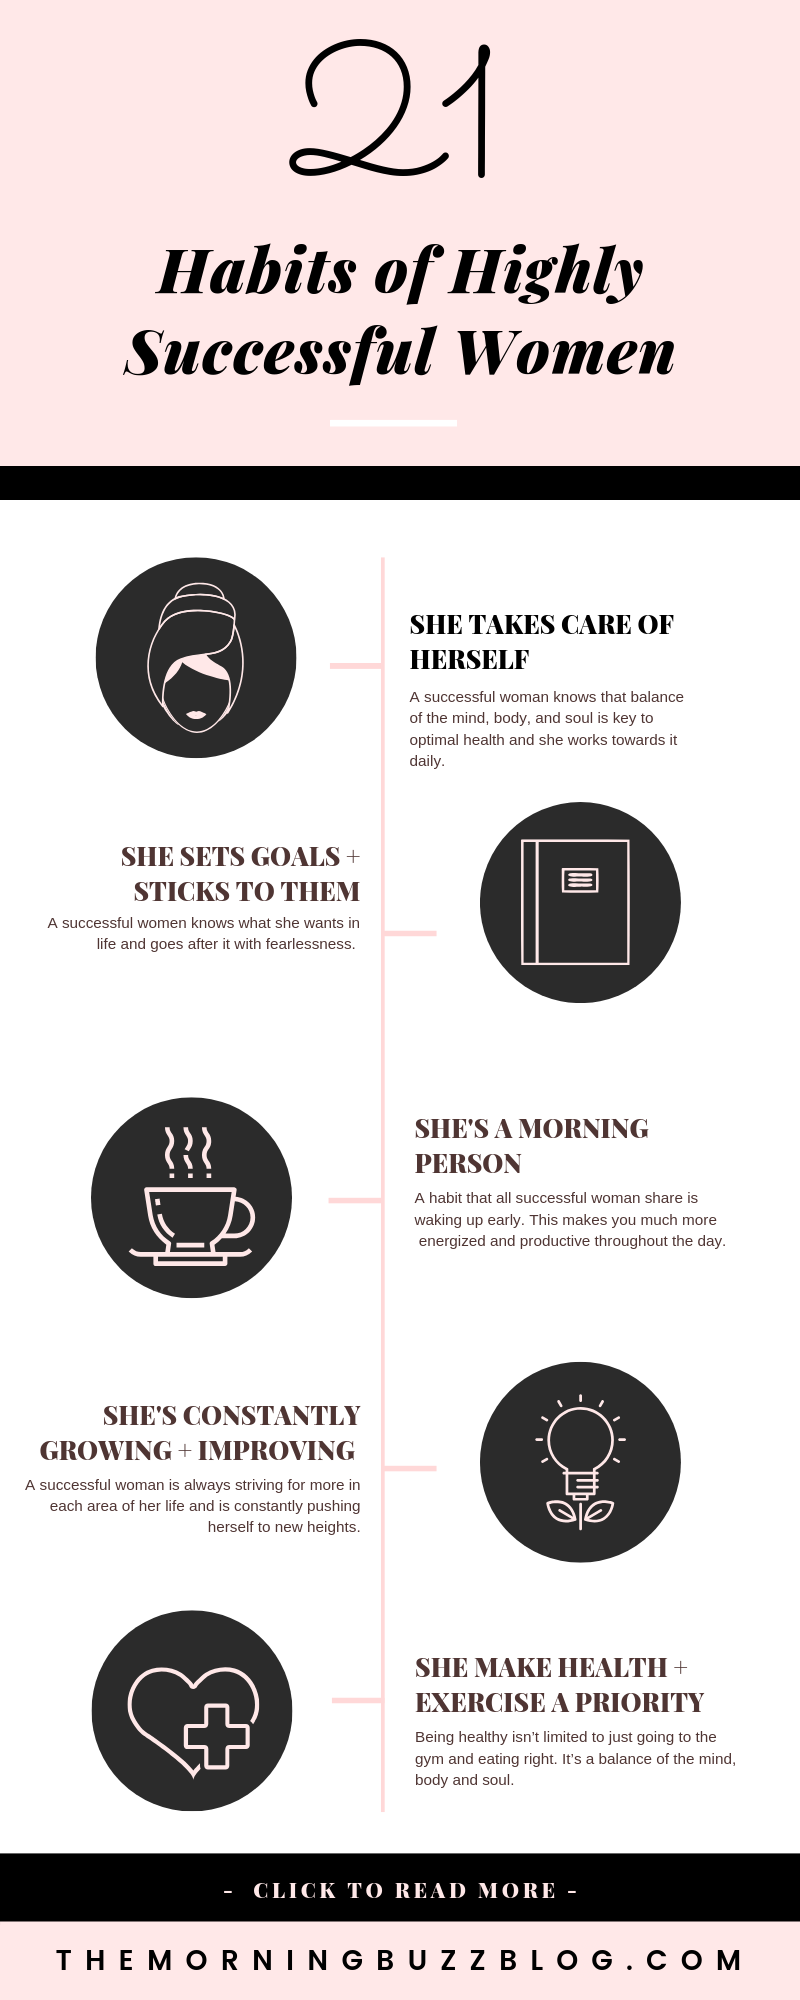 Whatever success means to you, there are certain habits that all successful women share to achieve their own success. These 21 habits of successful women will help you achieve more, improve time management, be more productive and give you the confidence boost you need to thrive. #habitsofsuccessfulwomen #successfulwomen #careertips #timemanagement #productivity #personalgrowth #business